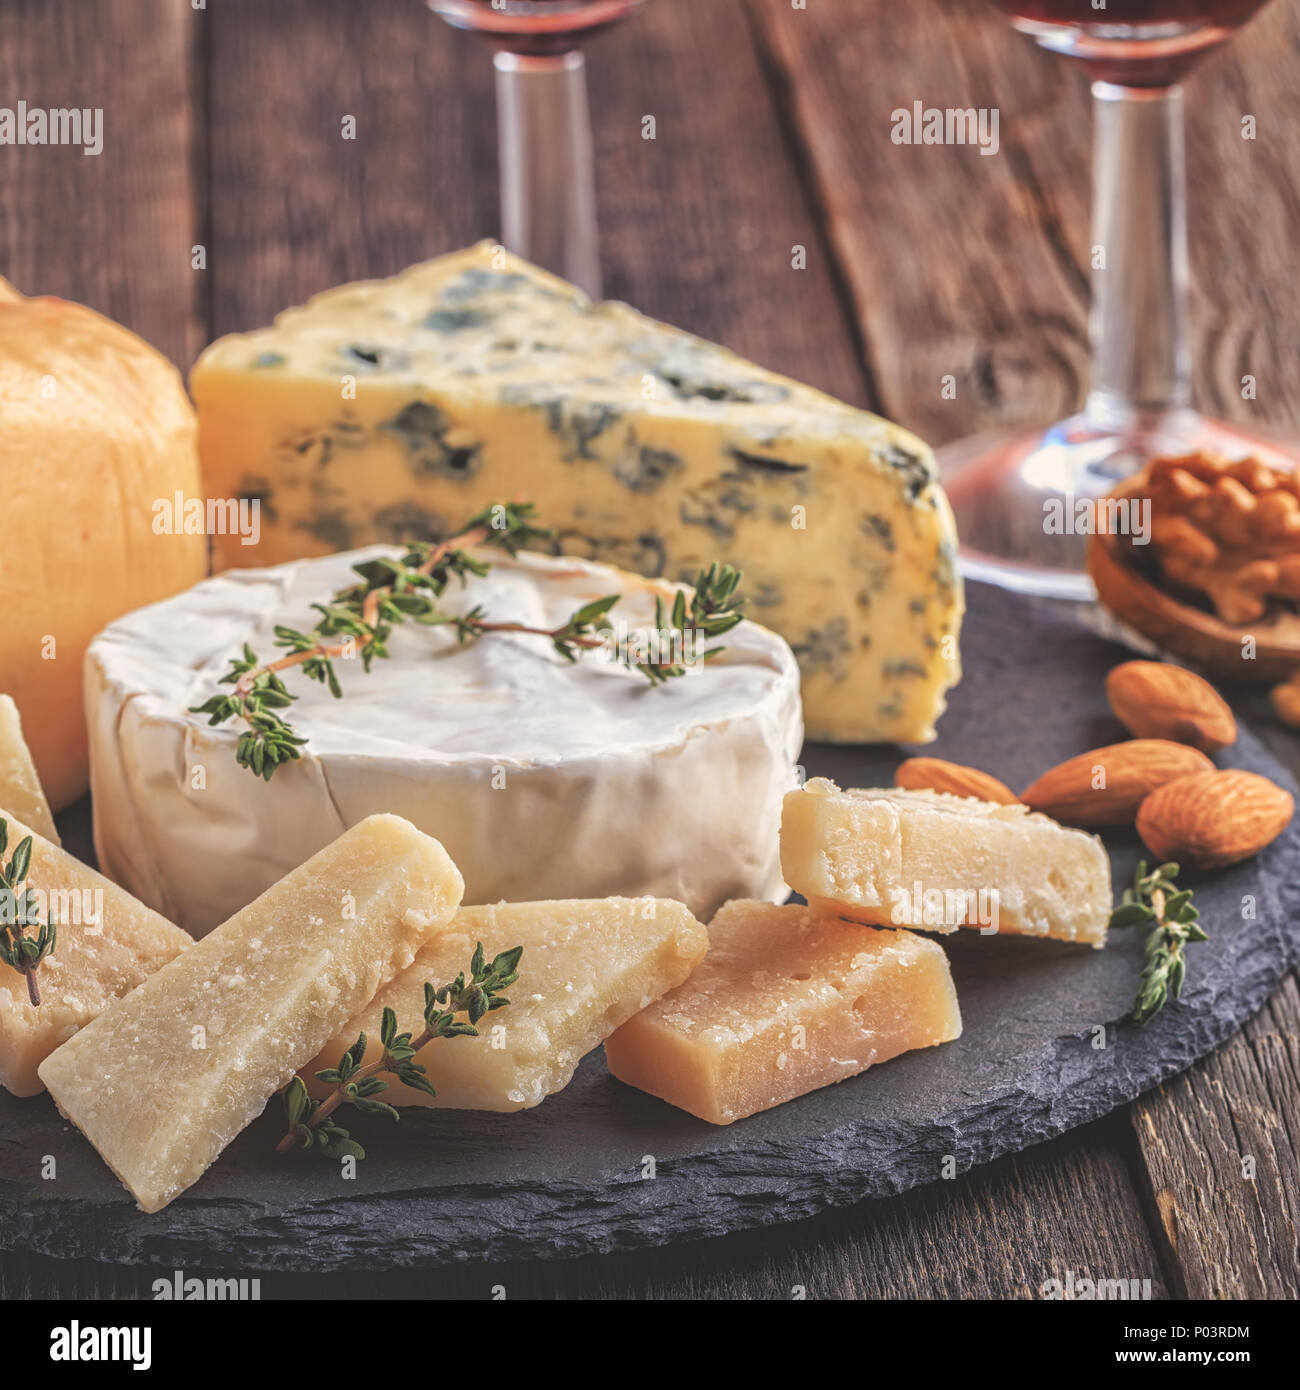 Cheese, nuts, honey and red wine on wooden background, selective focus. - Stock Image